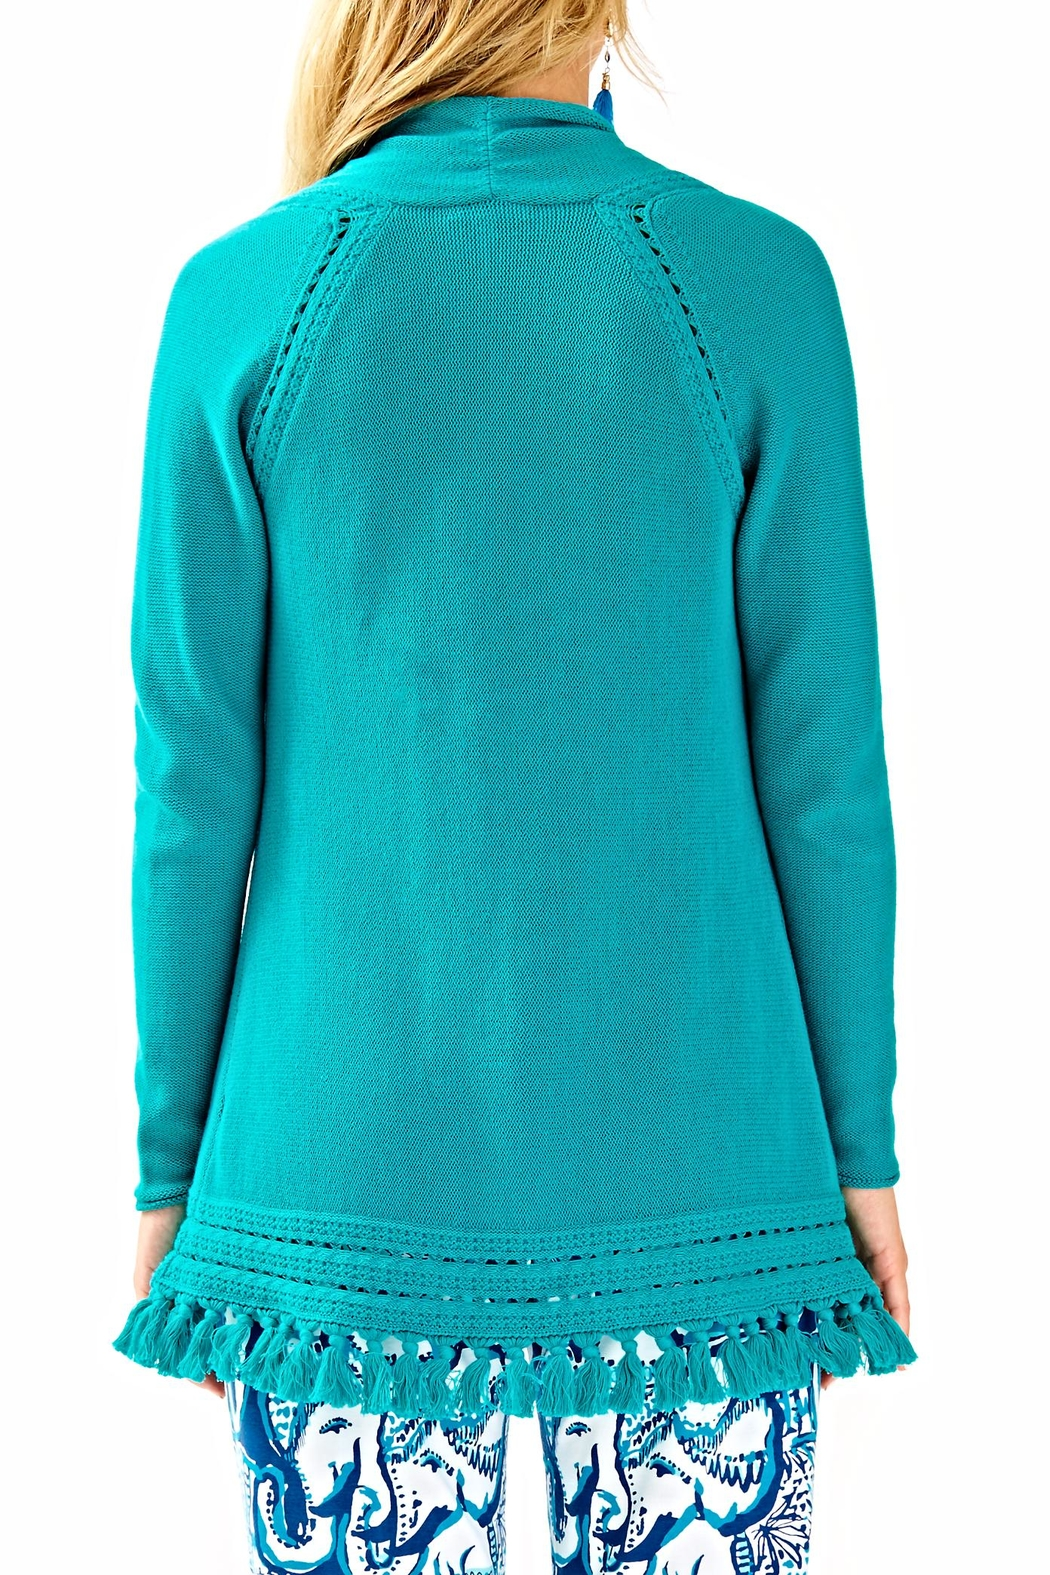 Lilly Pulitzer Martinique Fringe Sweater - Front Full Image